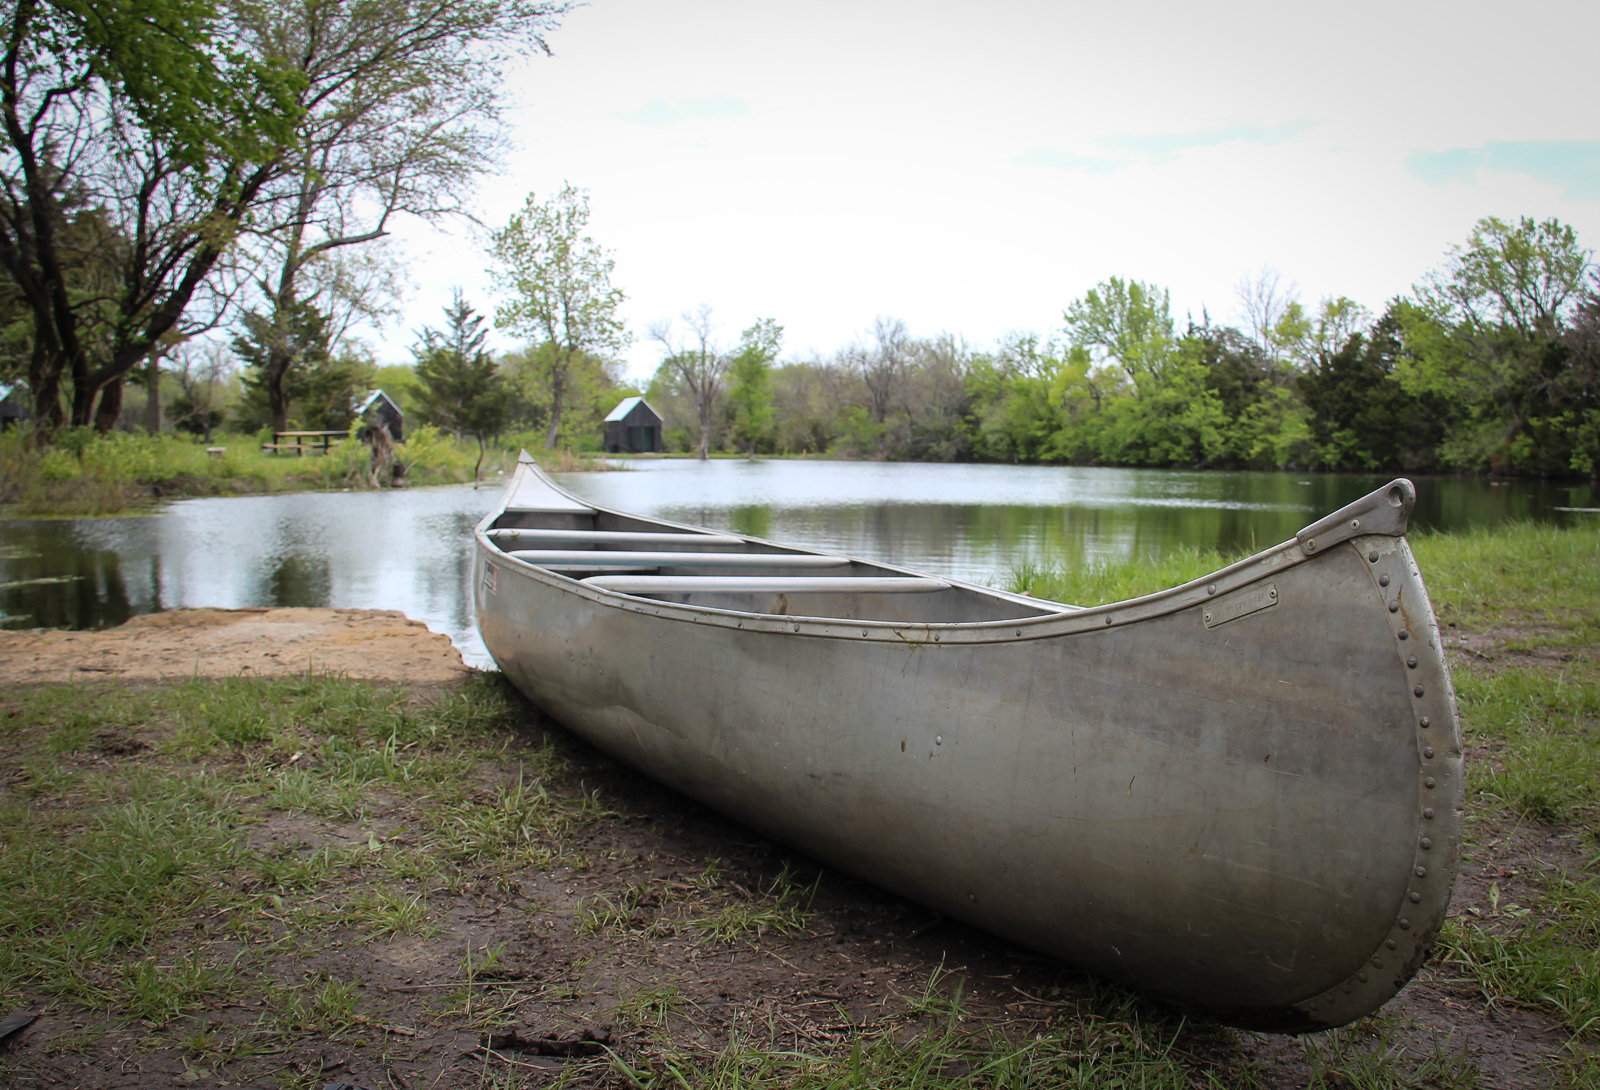 Enjoy boating and fishing in the clear waters of The Quarry Pond, near Kansas City Missouri.